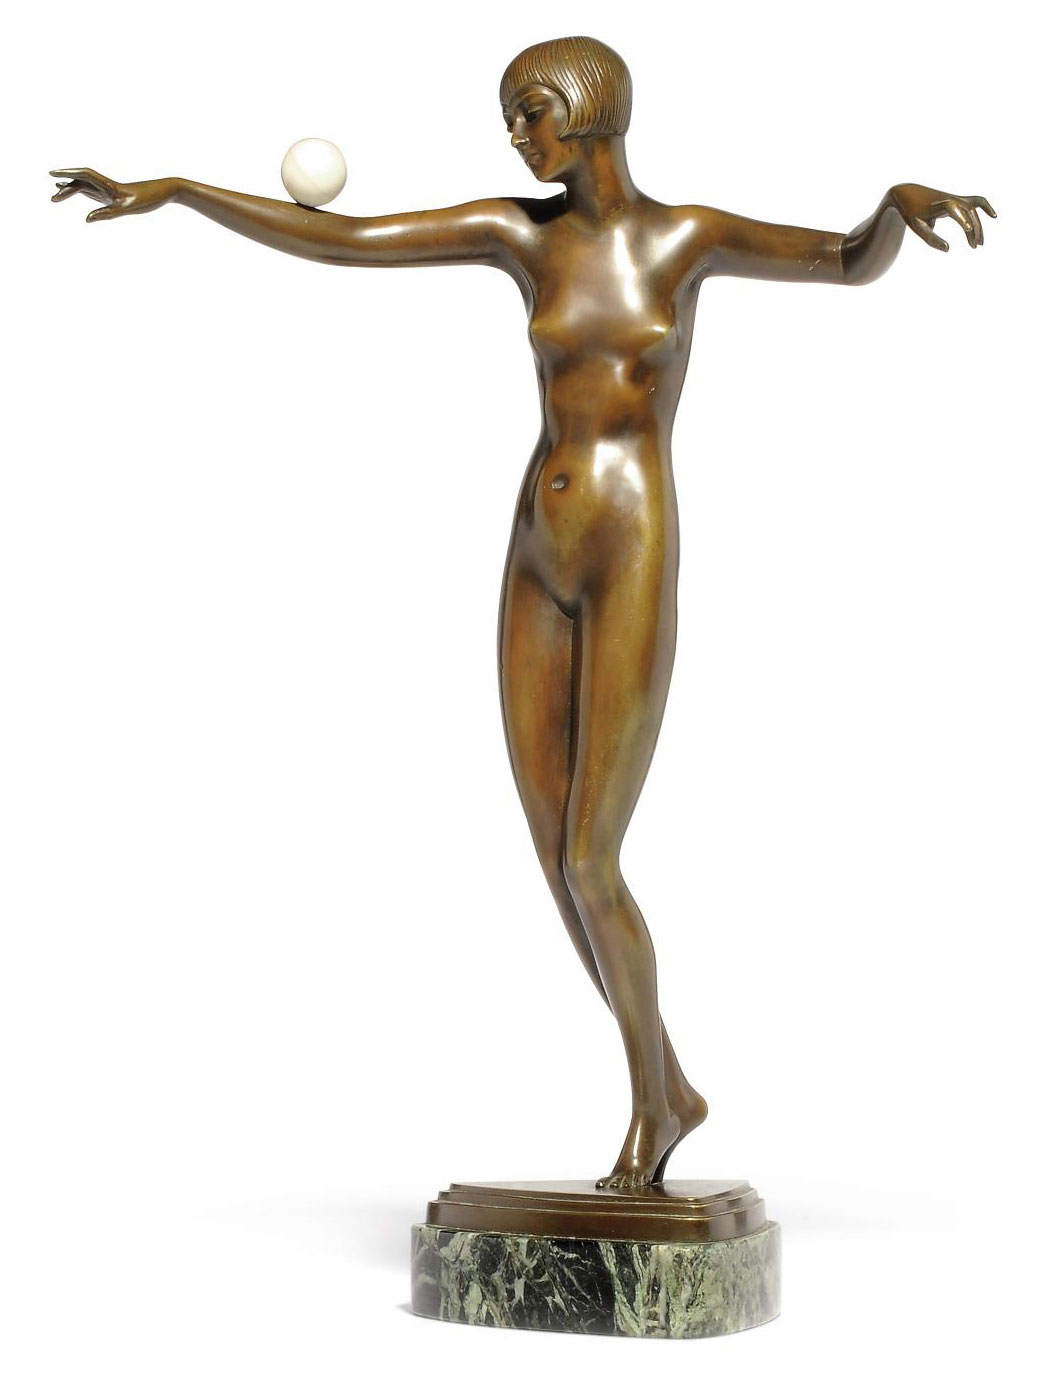 'BALANCING', A PAUL PHILIPPE PATINATED-BRONZE AND IVORY DANCER